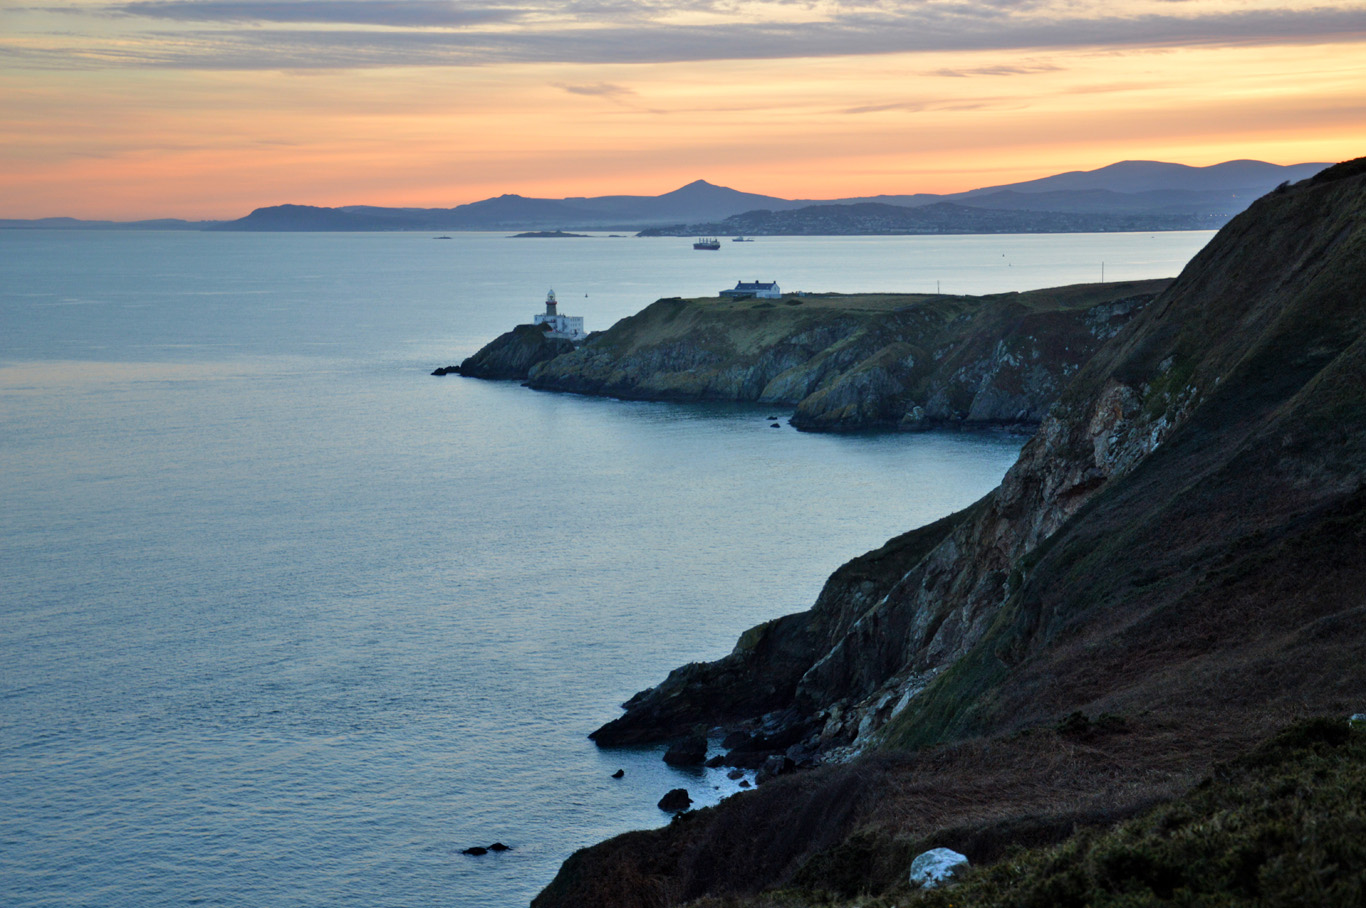 Sunset colors in Howth